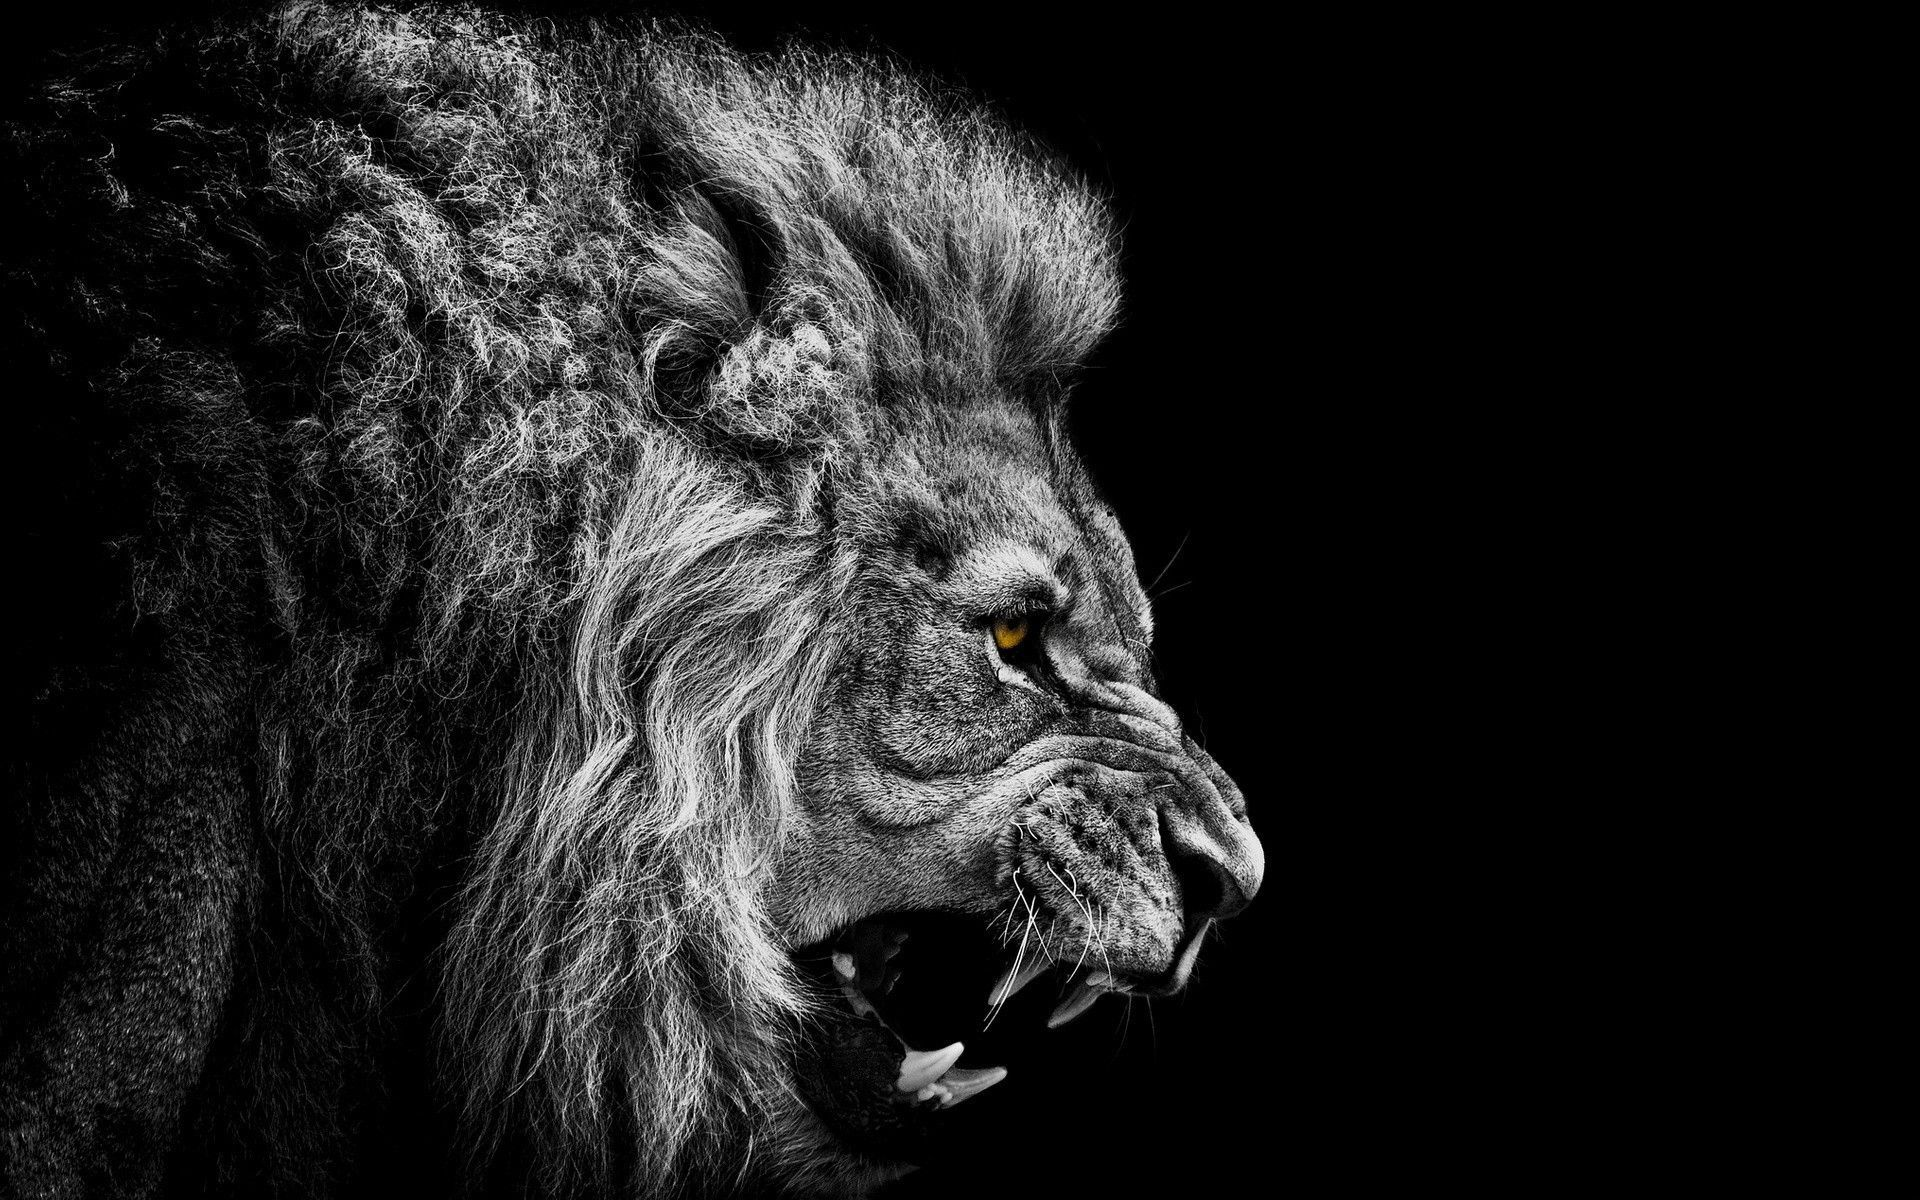 Angry Lion Face Wallpaper